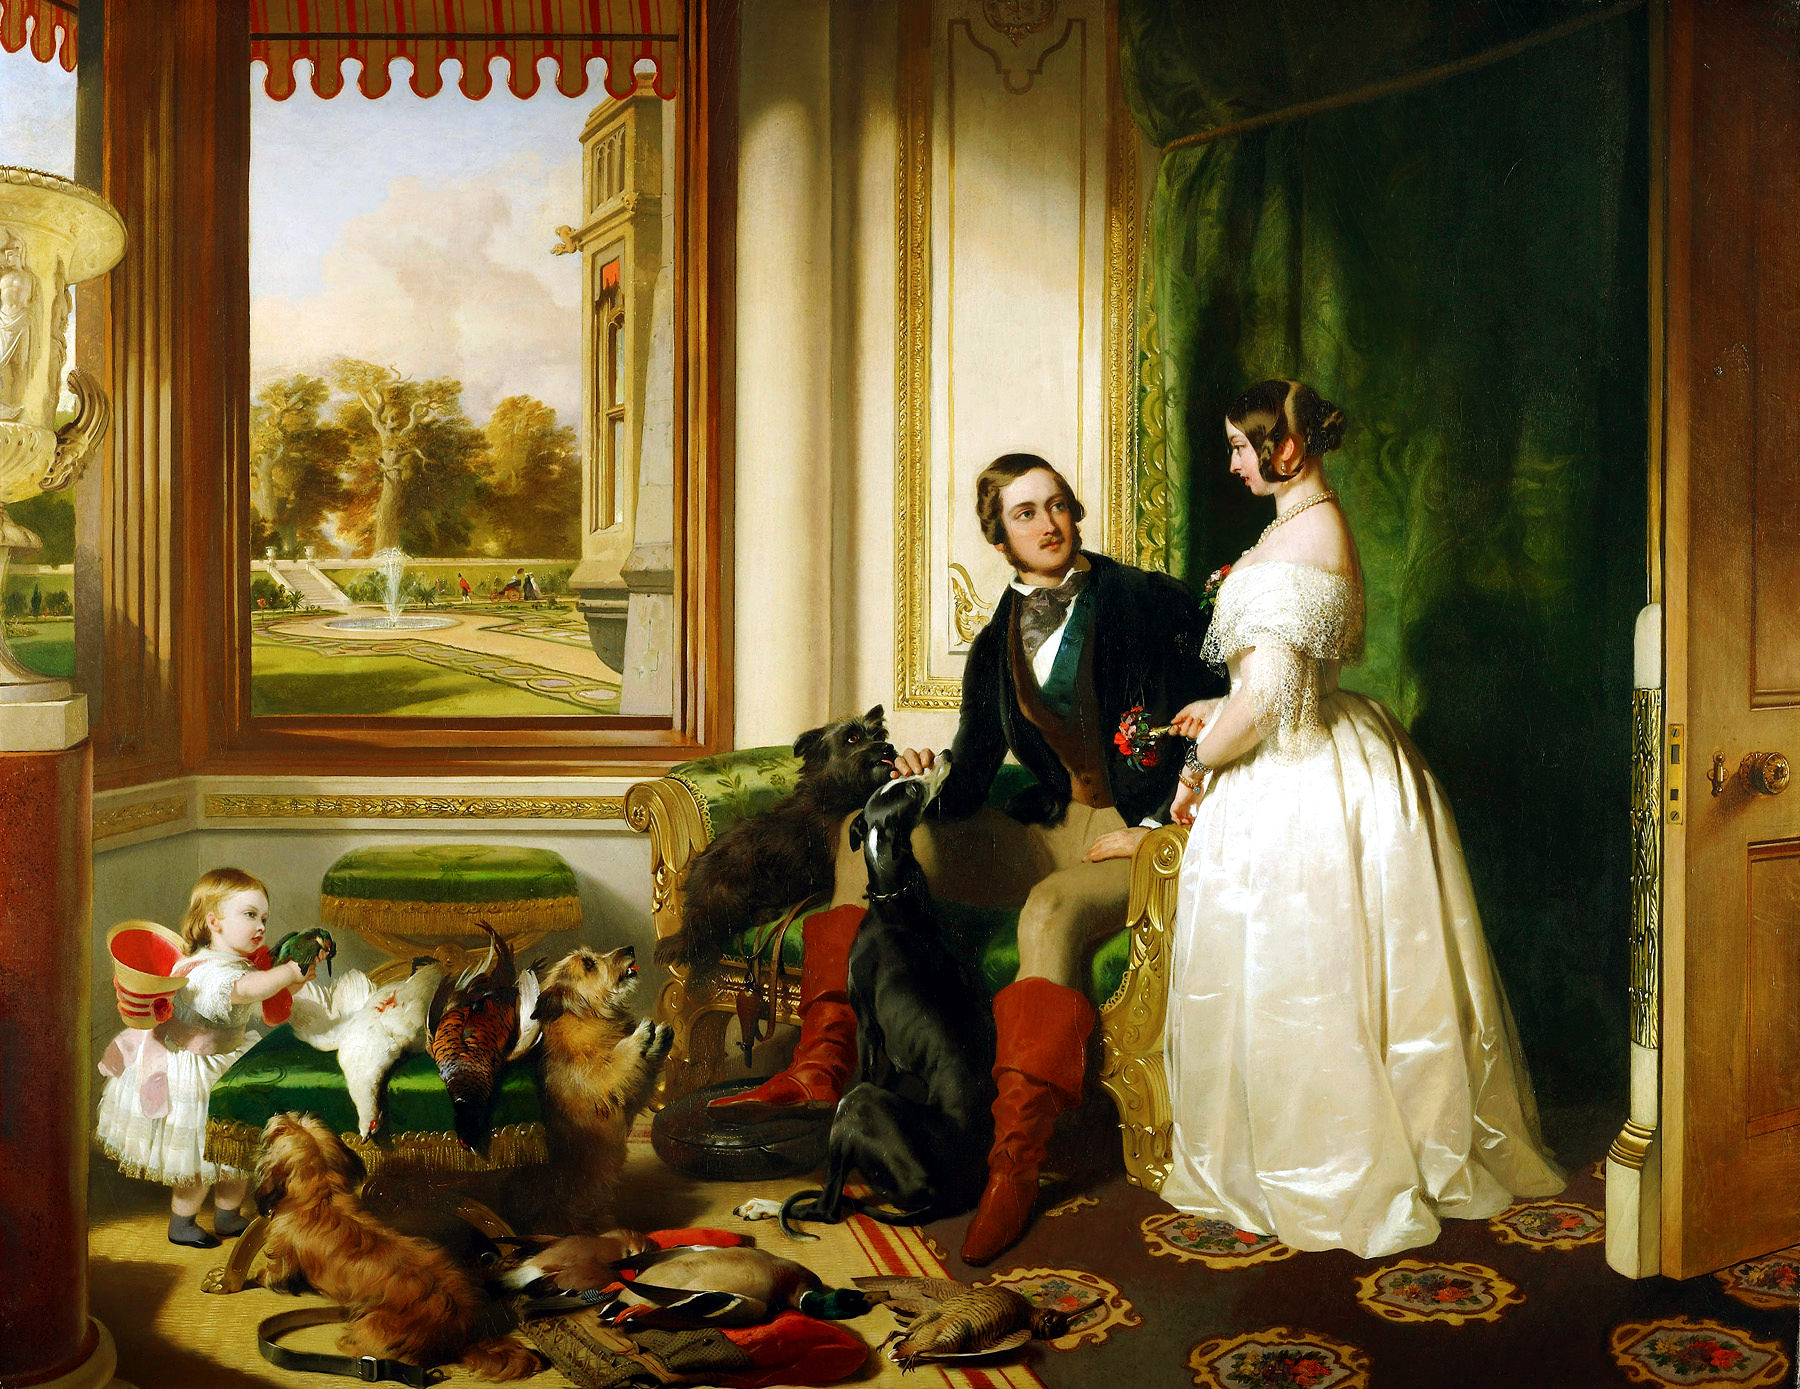 Windsor castle in modern times an introduction to 19th for La regina anne house